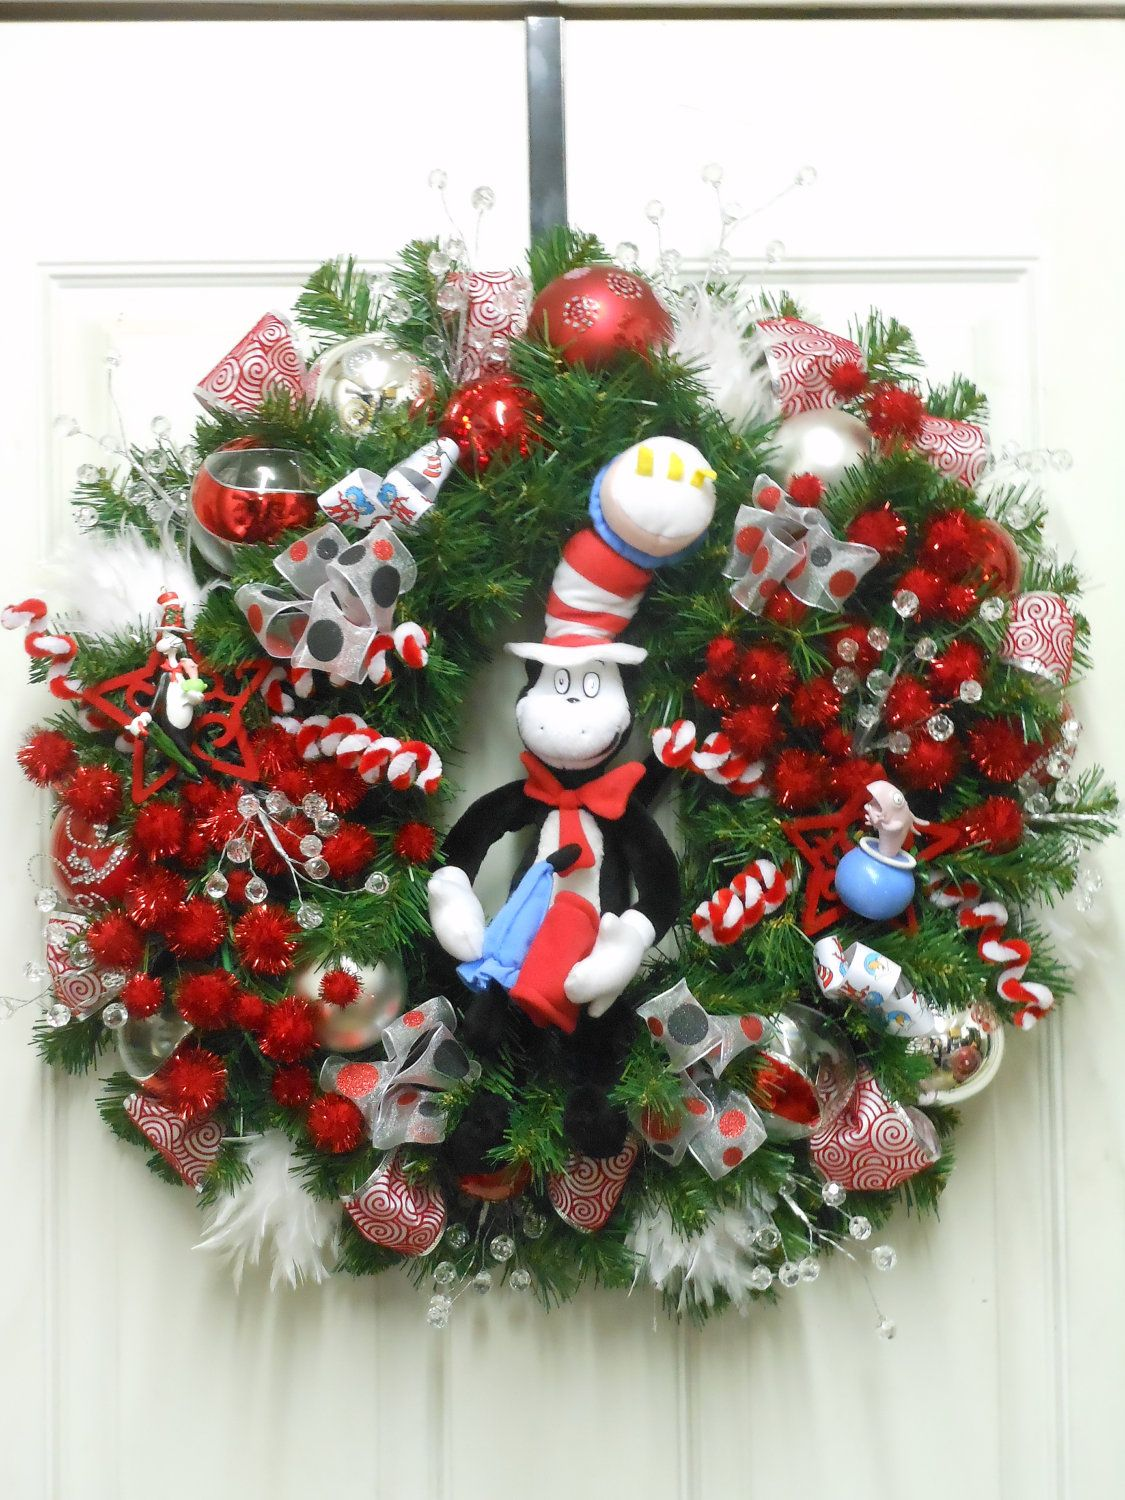 Cat in the hat ornaments - Seuss Cat In The Hat Wreath With Collectible Ornaments Plush Cat